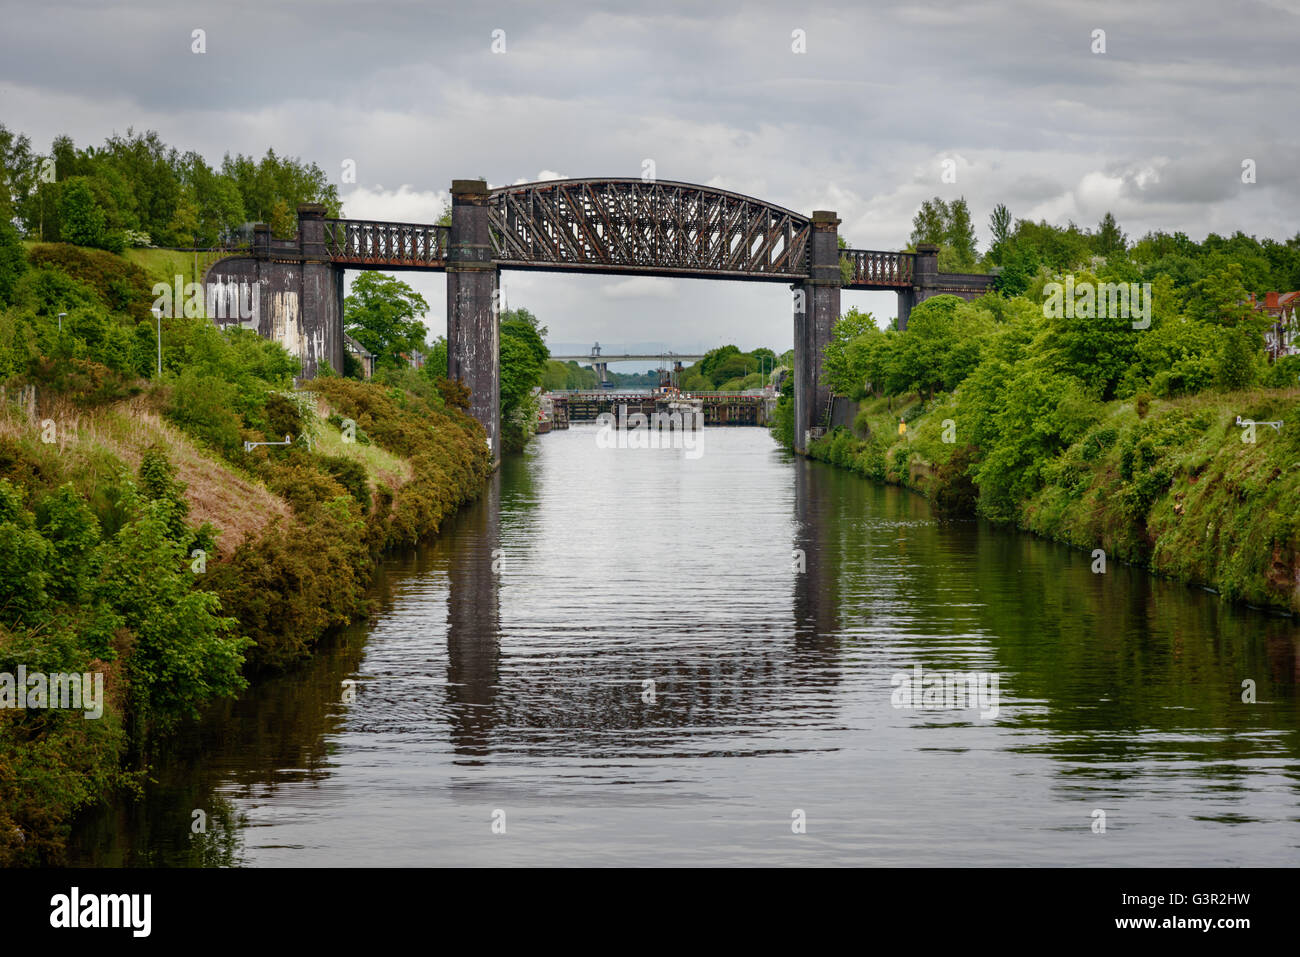 The Thelwall Viaduct is a steel composite girder viaduct in  Lymm, Warrington, England. - Stock Image